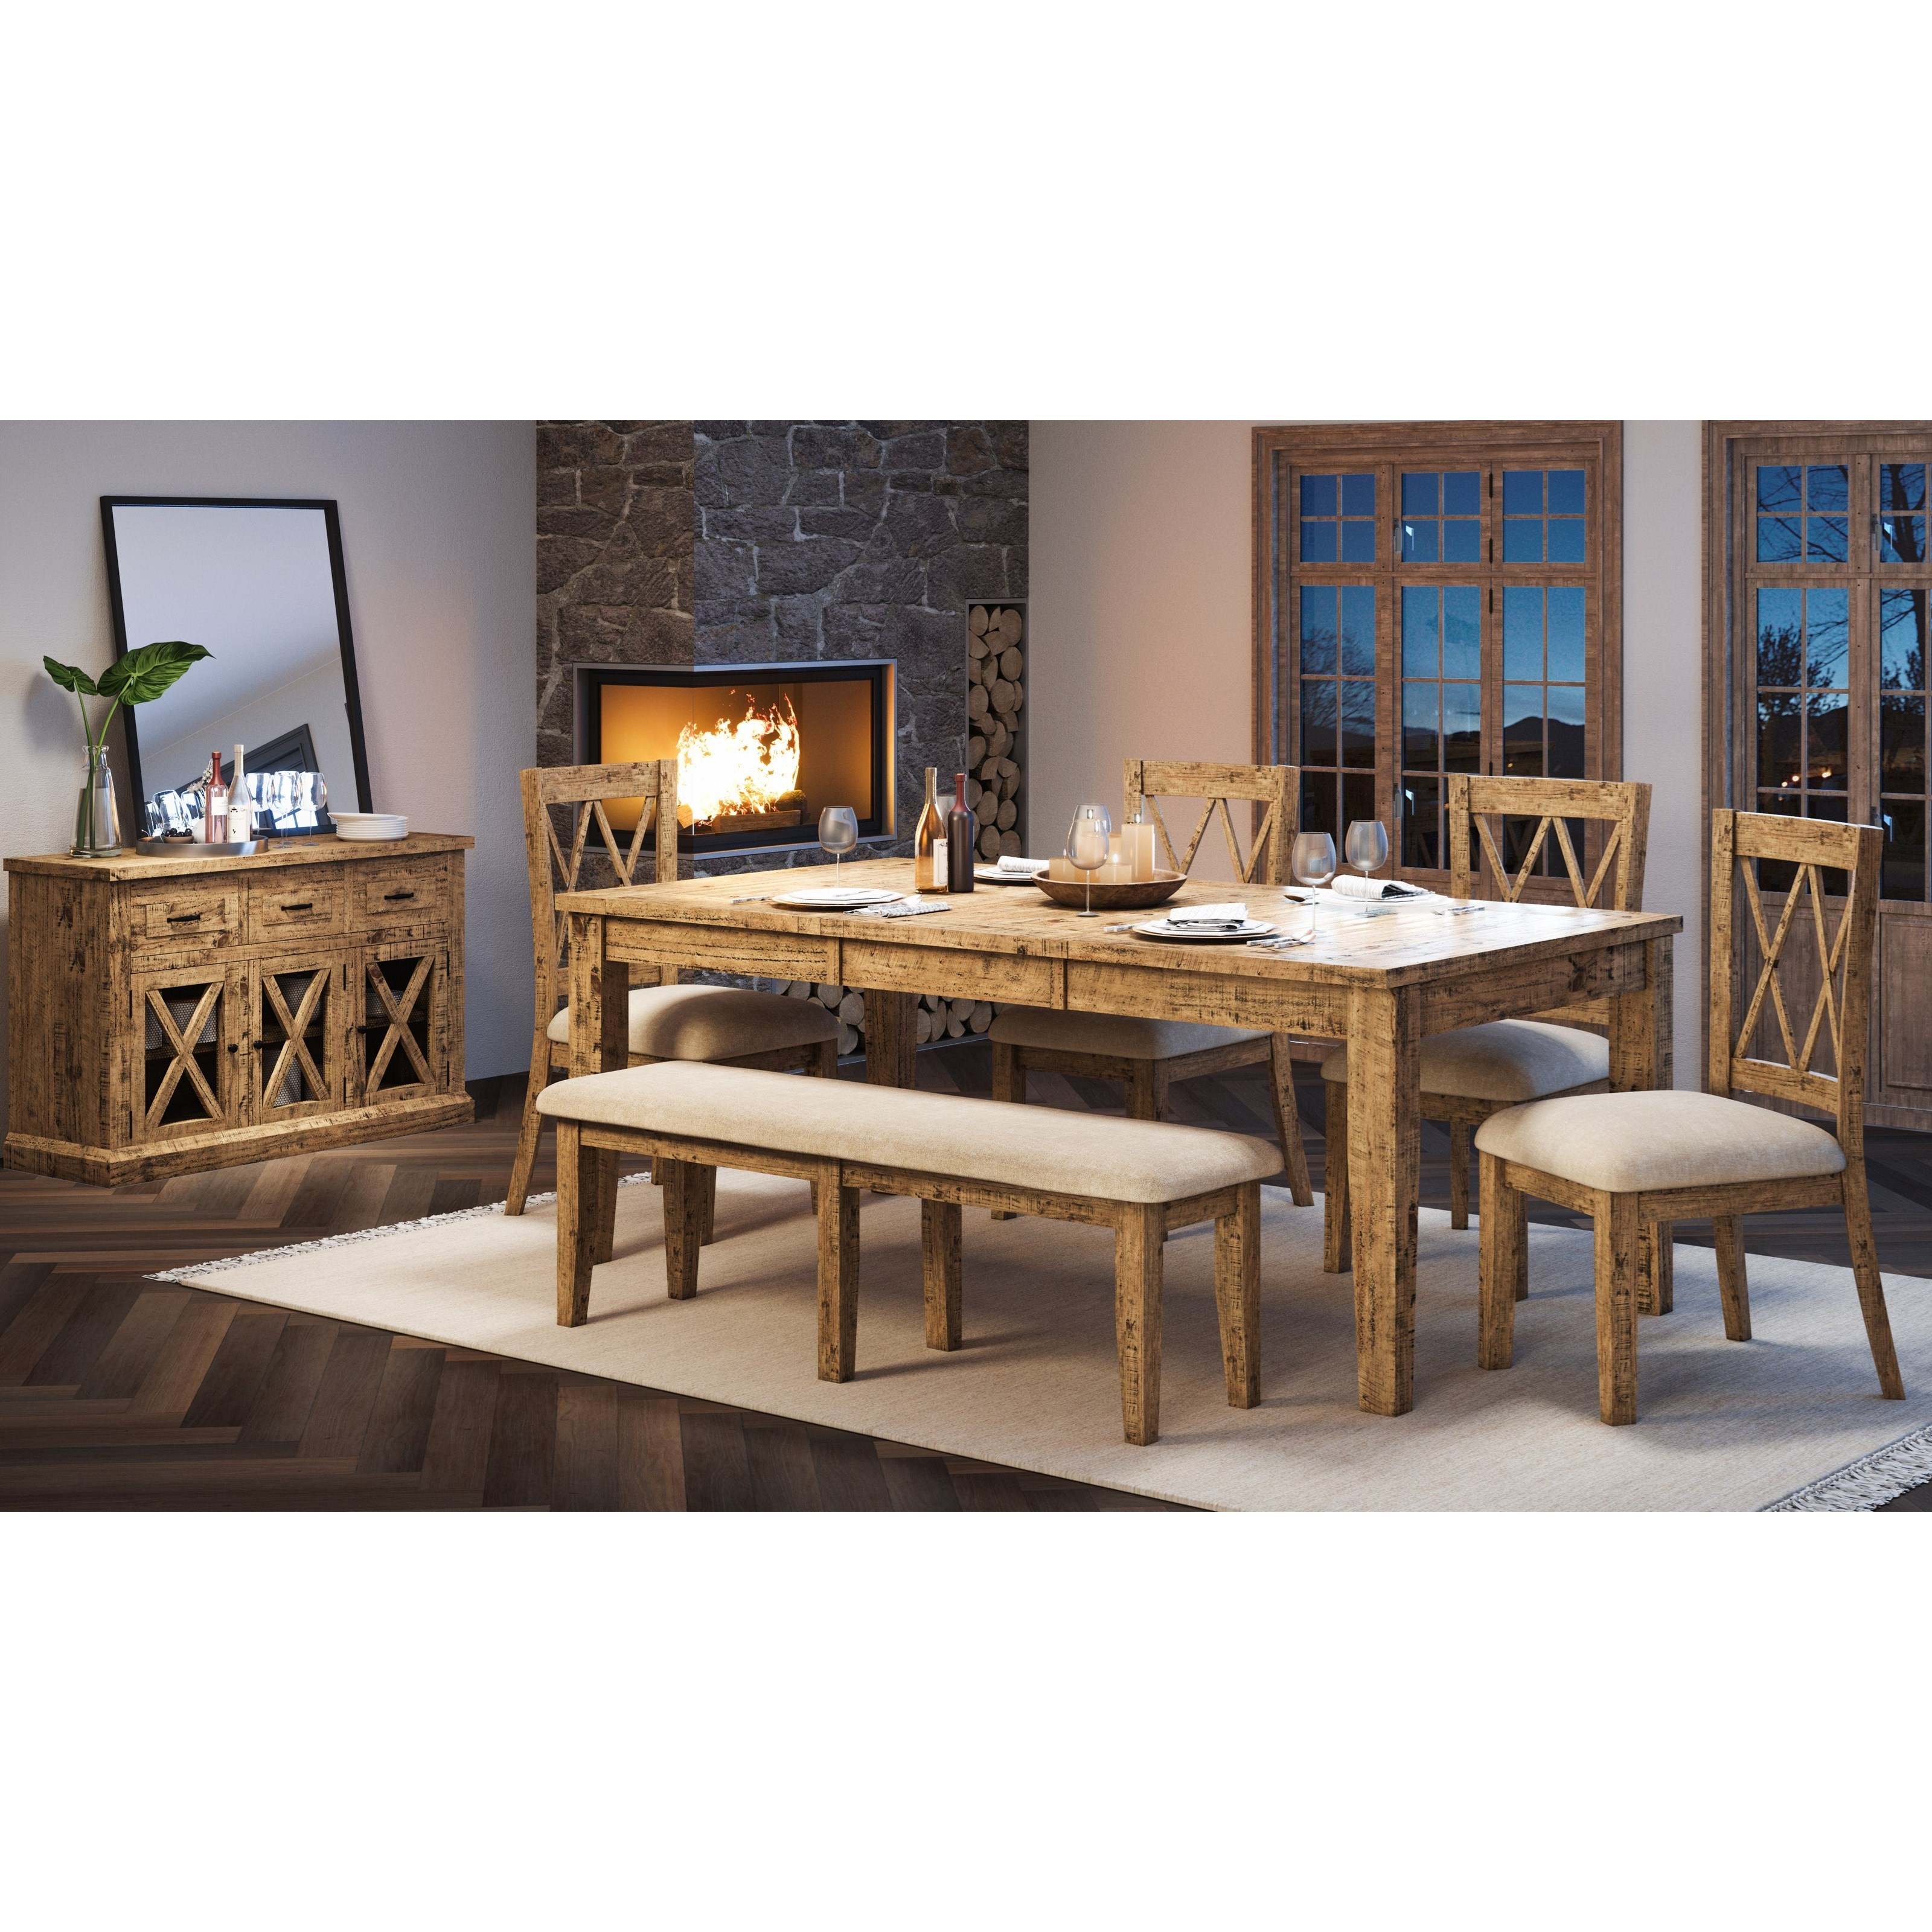 Telluride  6-Piece Table and Chair Set with Bench by Jofran at Beck's Furniture